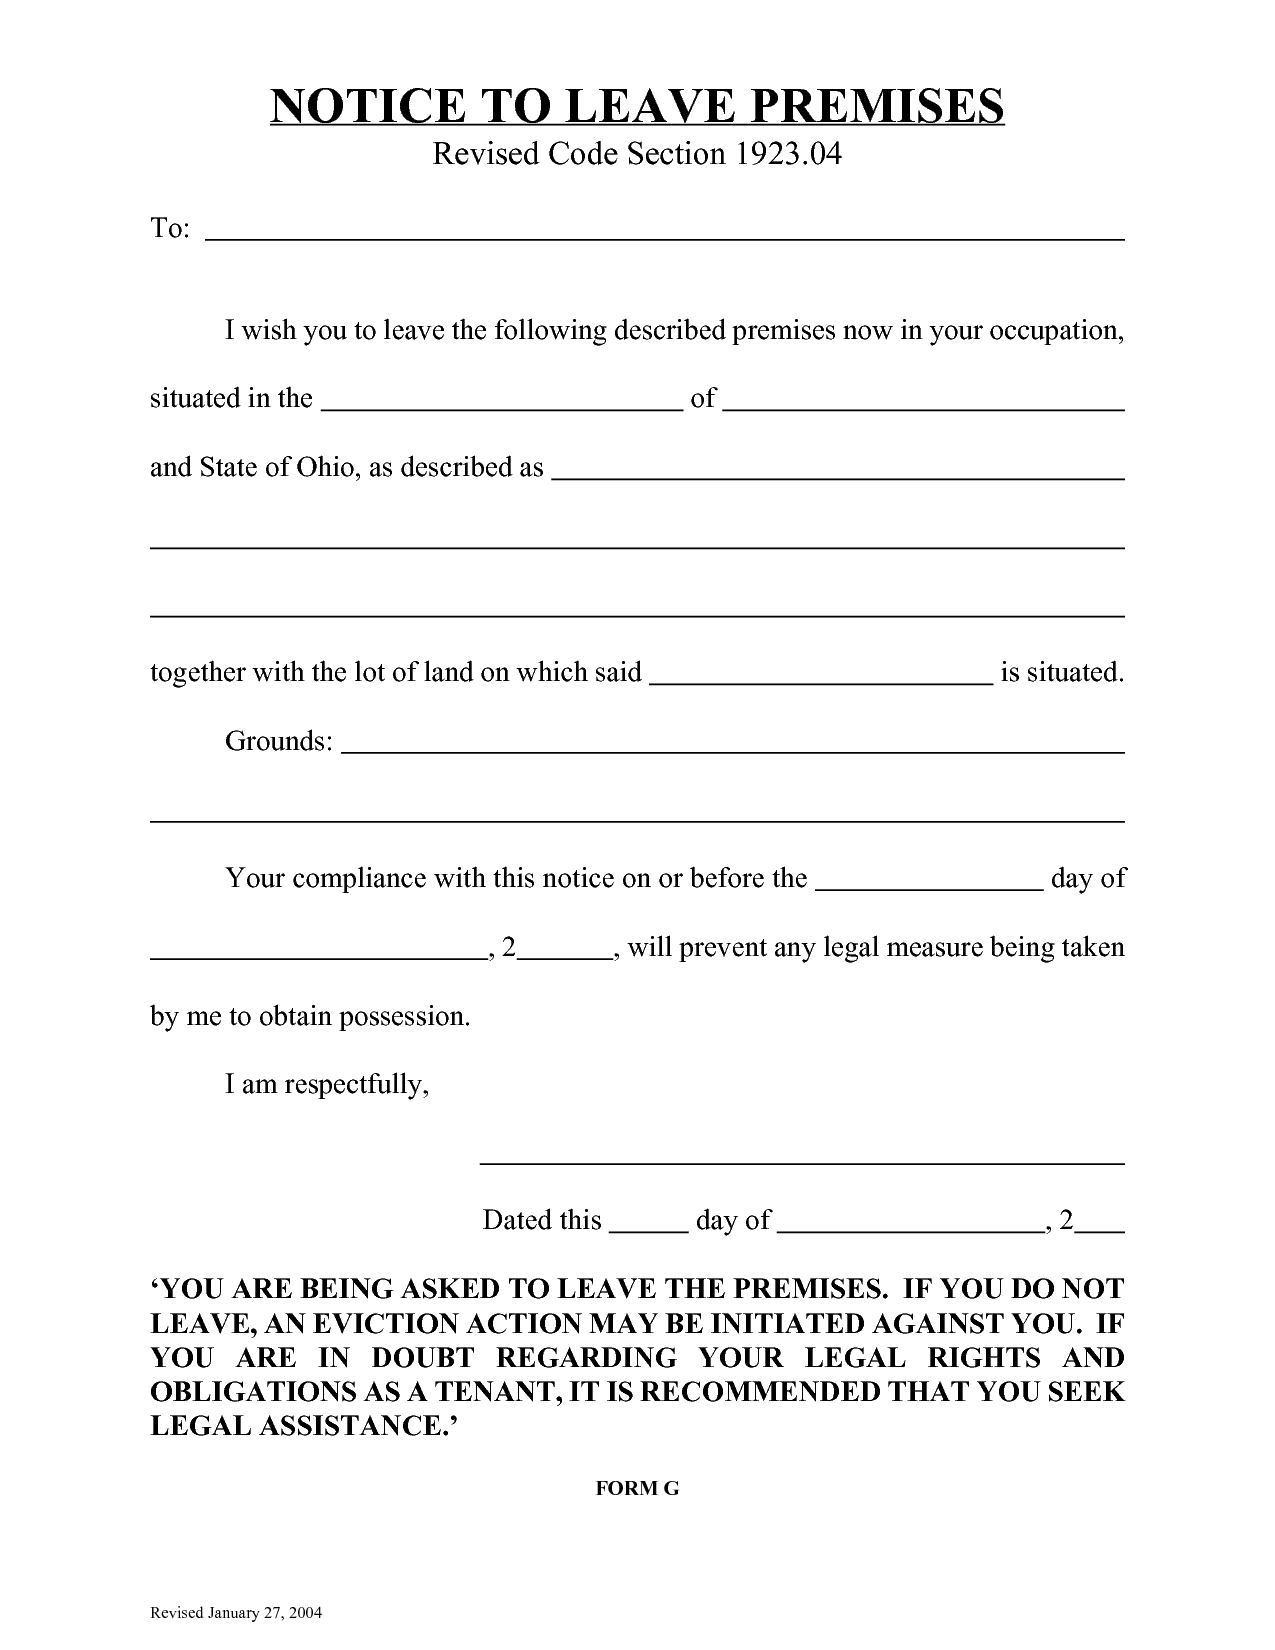 10 Best Images Of Eviction Notice Florida Form Blank Template Via 3 - Free Printable Eviction Notice Ohio